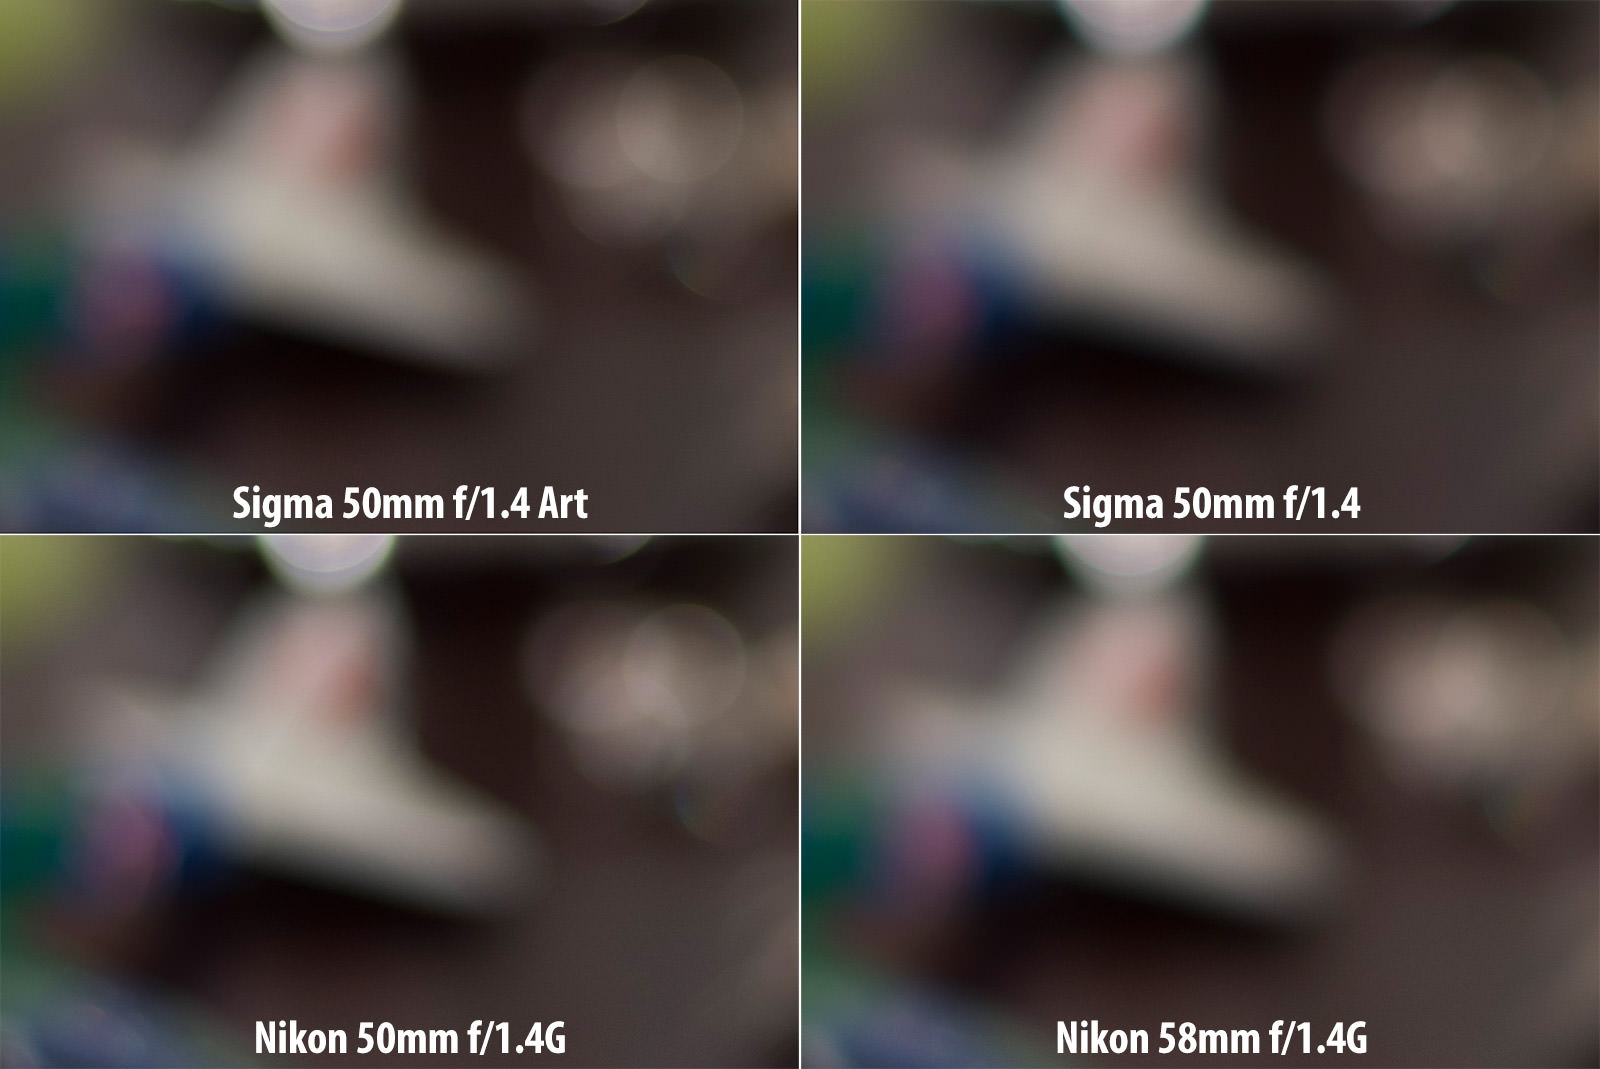 Sigma 50mm F 14 Art Sharpness And Bokeh Comparison Photography Life 85mm Ex Dg Hsm For Nikon Once Again The Smoothest Of Bunch Is 58mm 14g Followed By Older Then